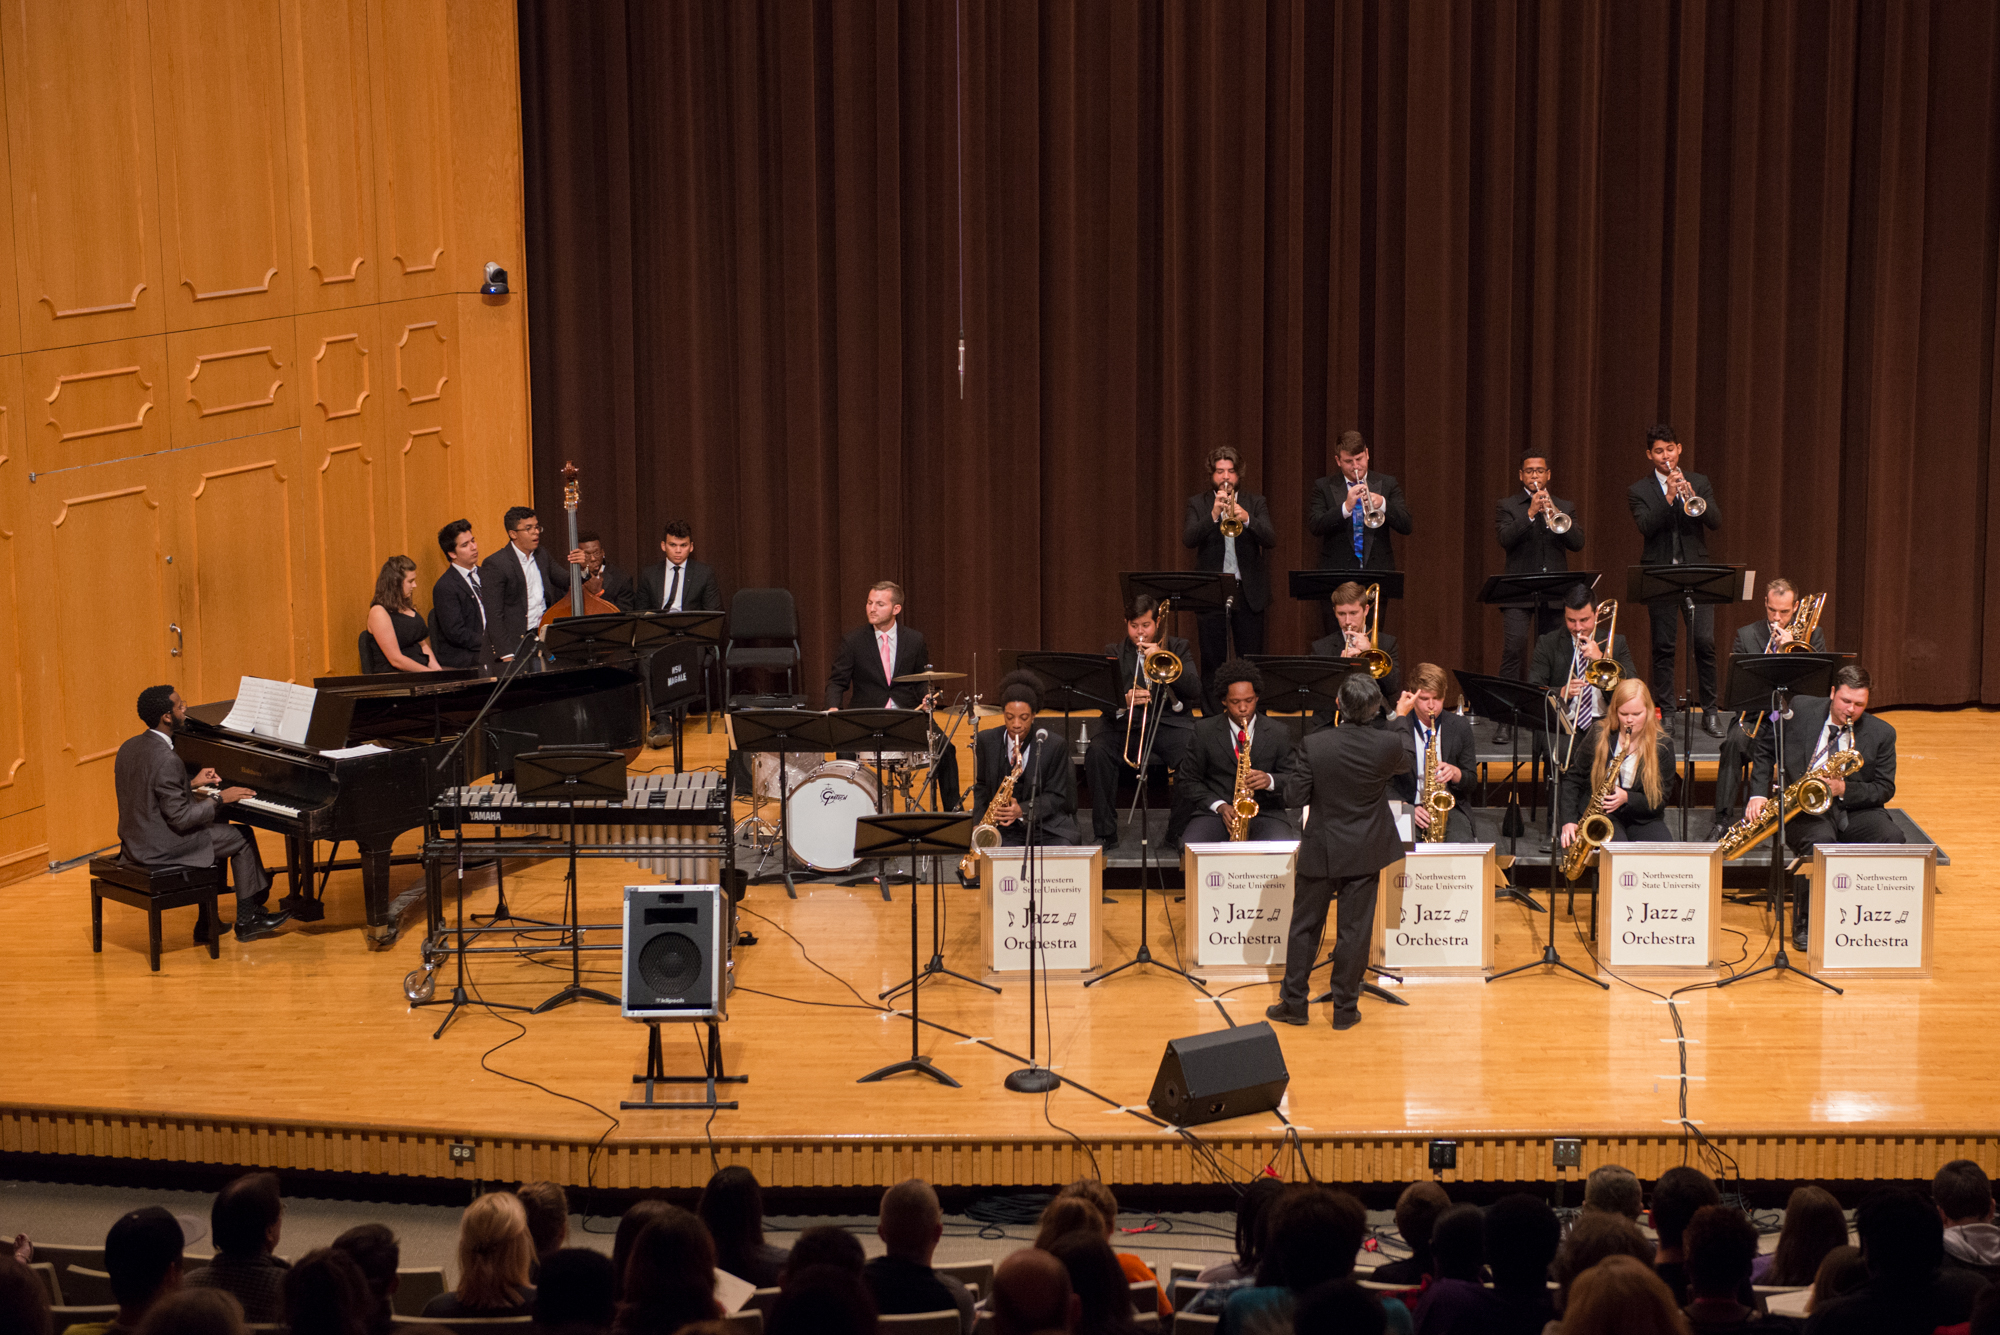 Nsu Jazz Orchestra To Perform Oct. 2 – Northwestern State Pertaining To Grambling State University Orchestra Calendar